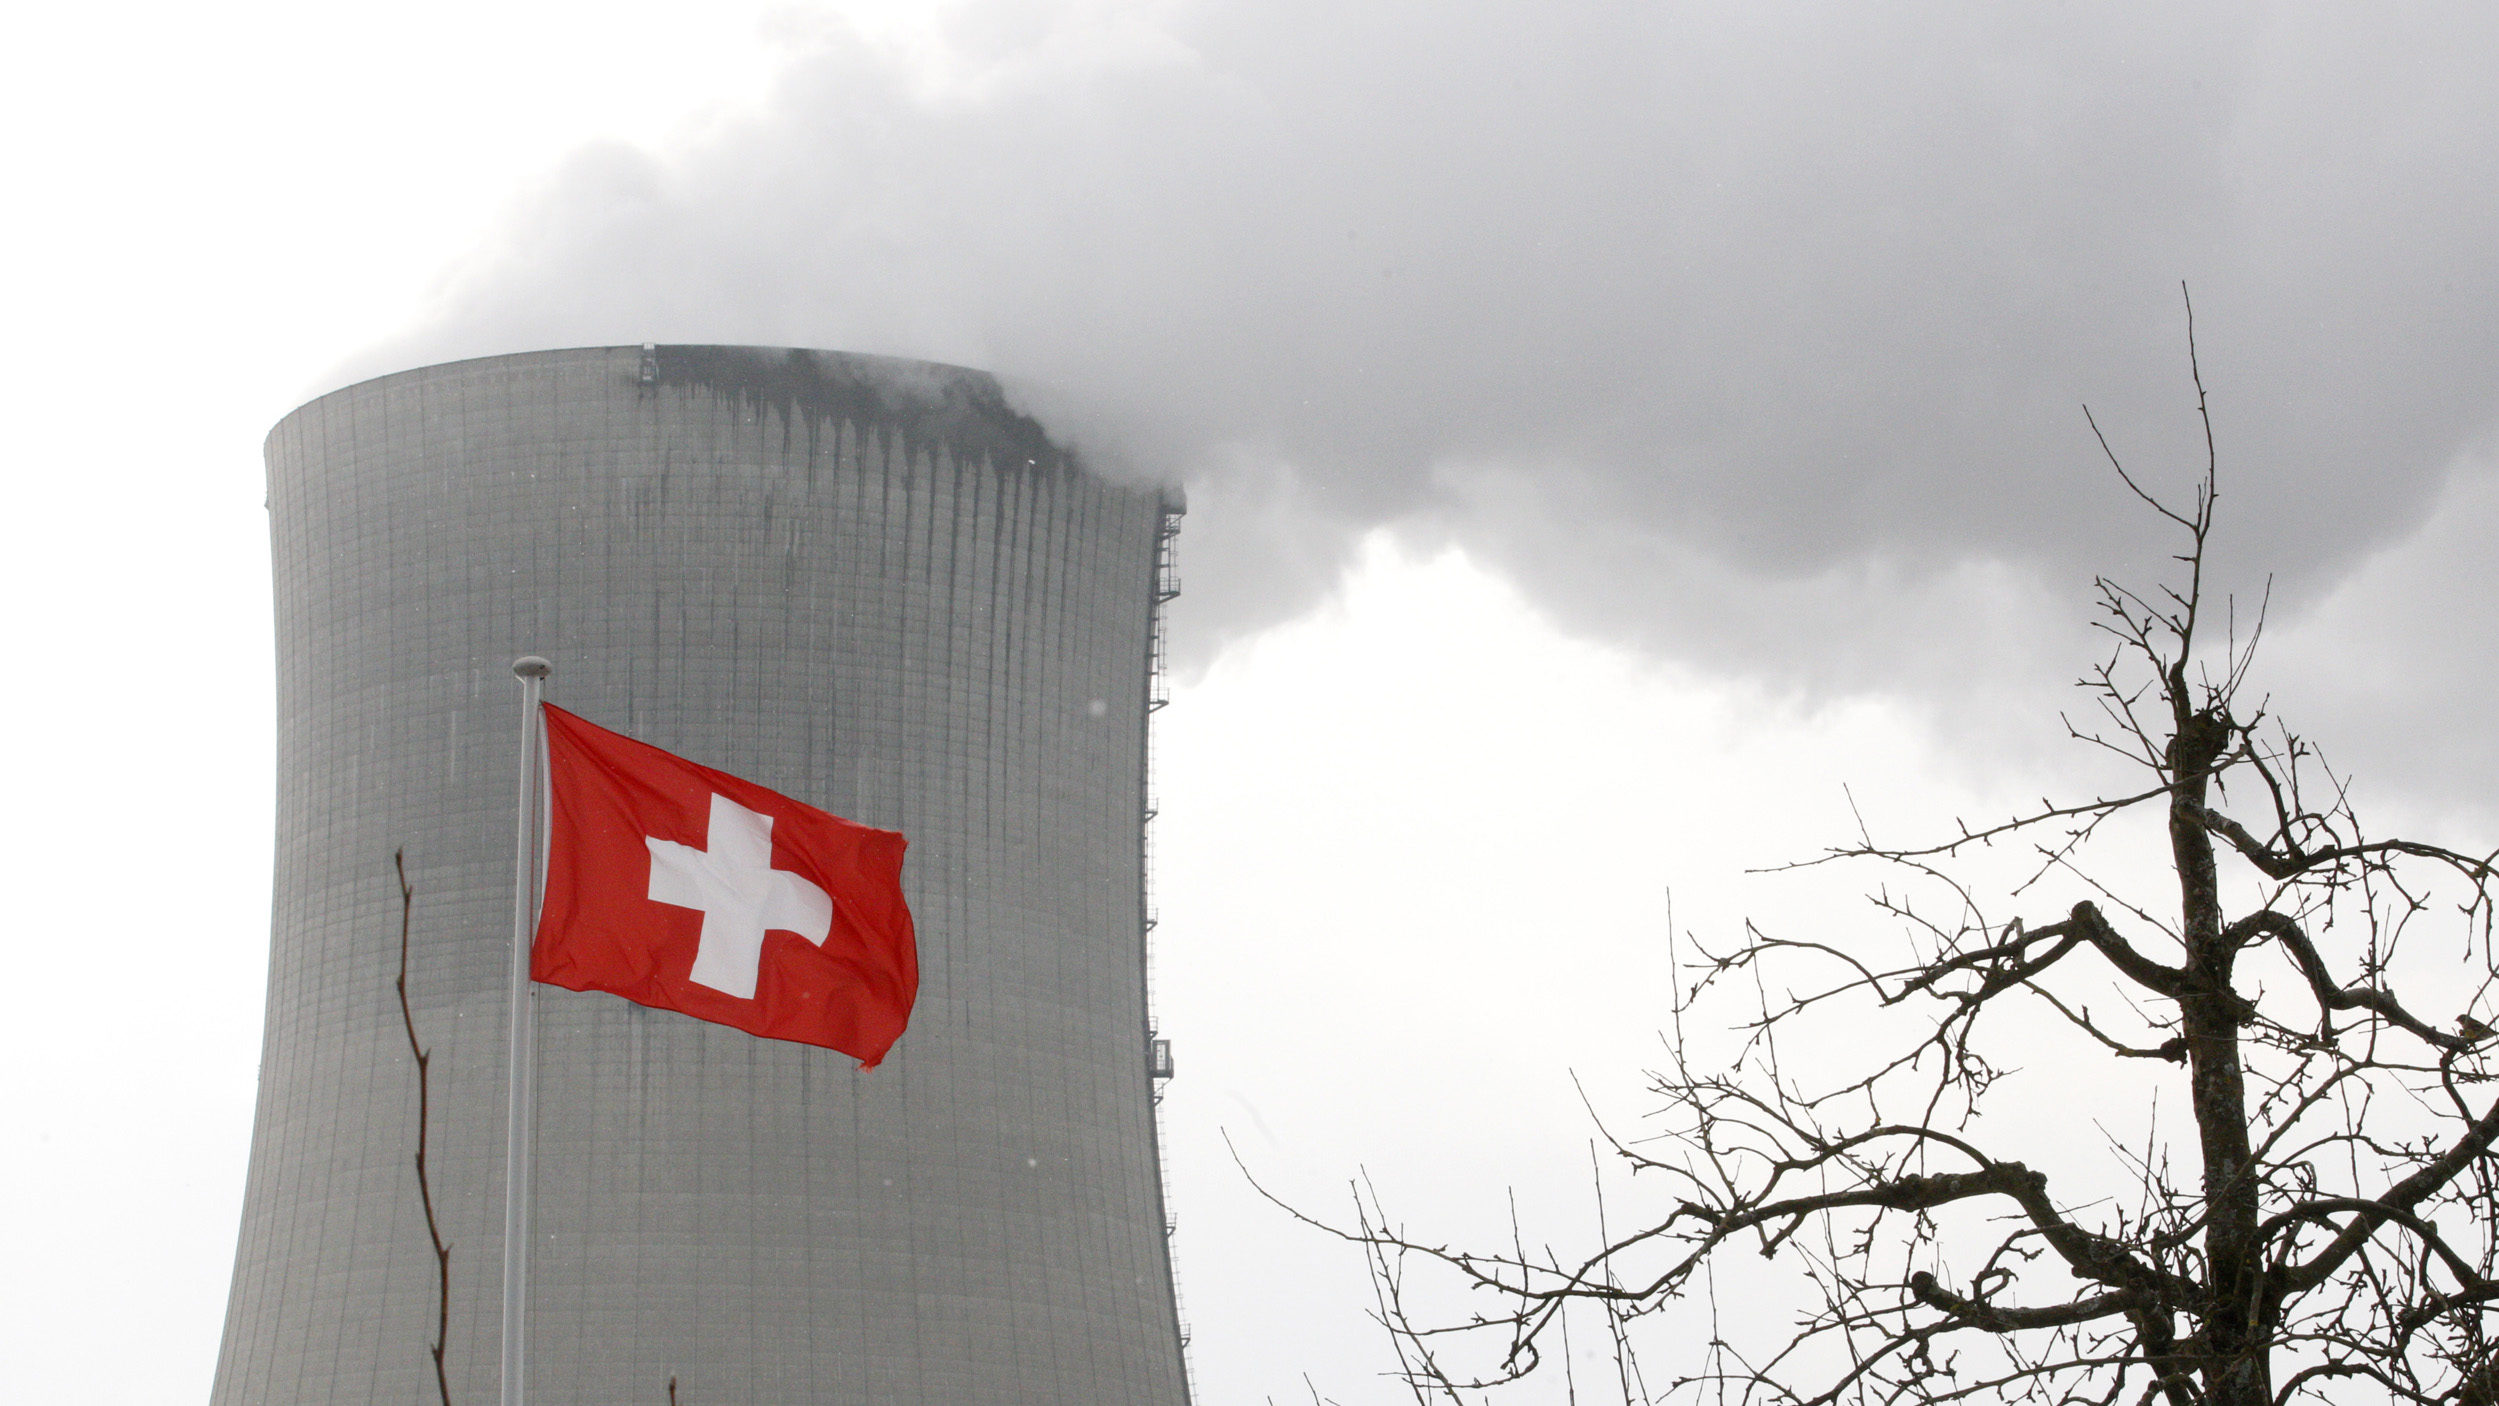 A Swiss flag flies in front of the cooling tower of Goesgen's nuclear power plant, February 10, 2012.  REUTERS/Christian Hartmann (SWITZERLAND - Tags: ENERGY ENVIRONMENT POLITICS) - RTR2XLFL